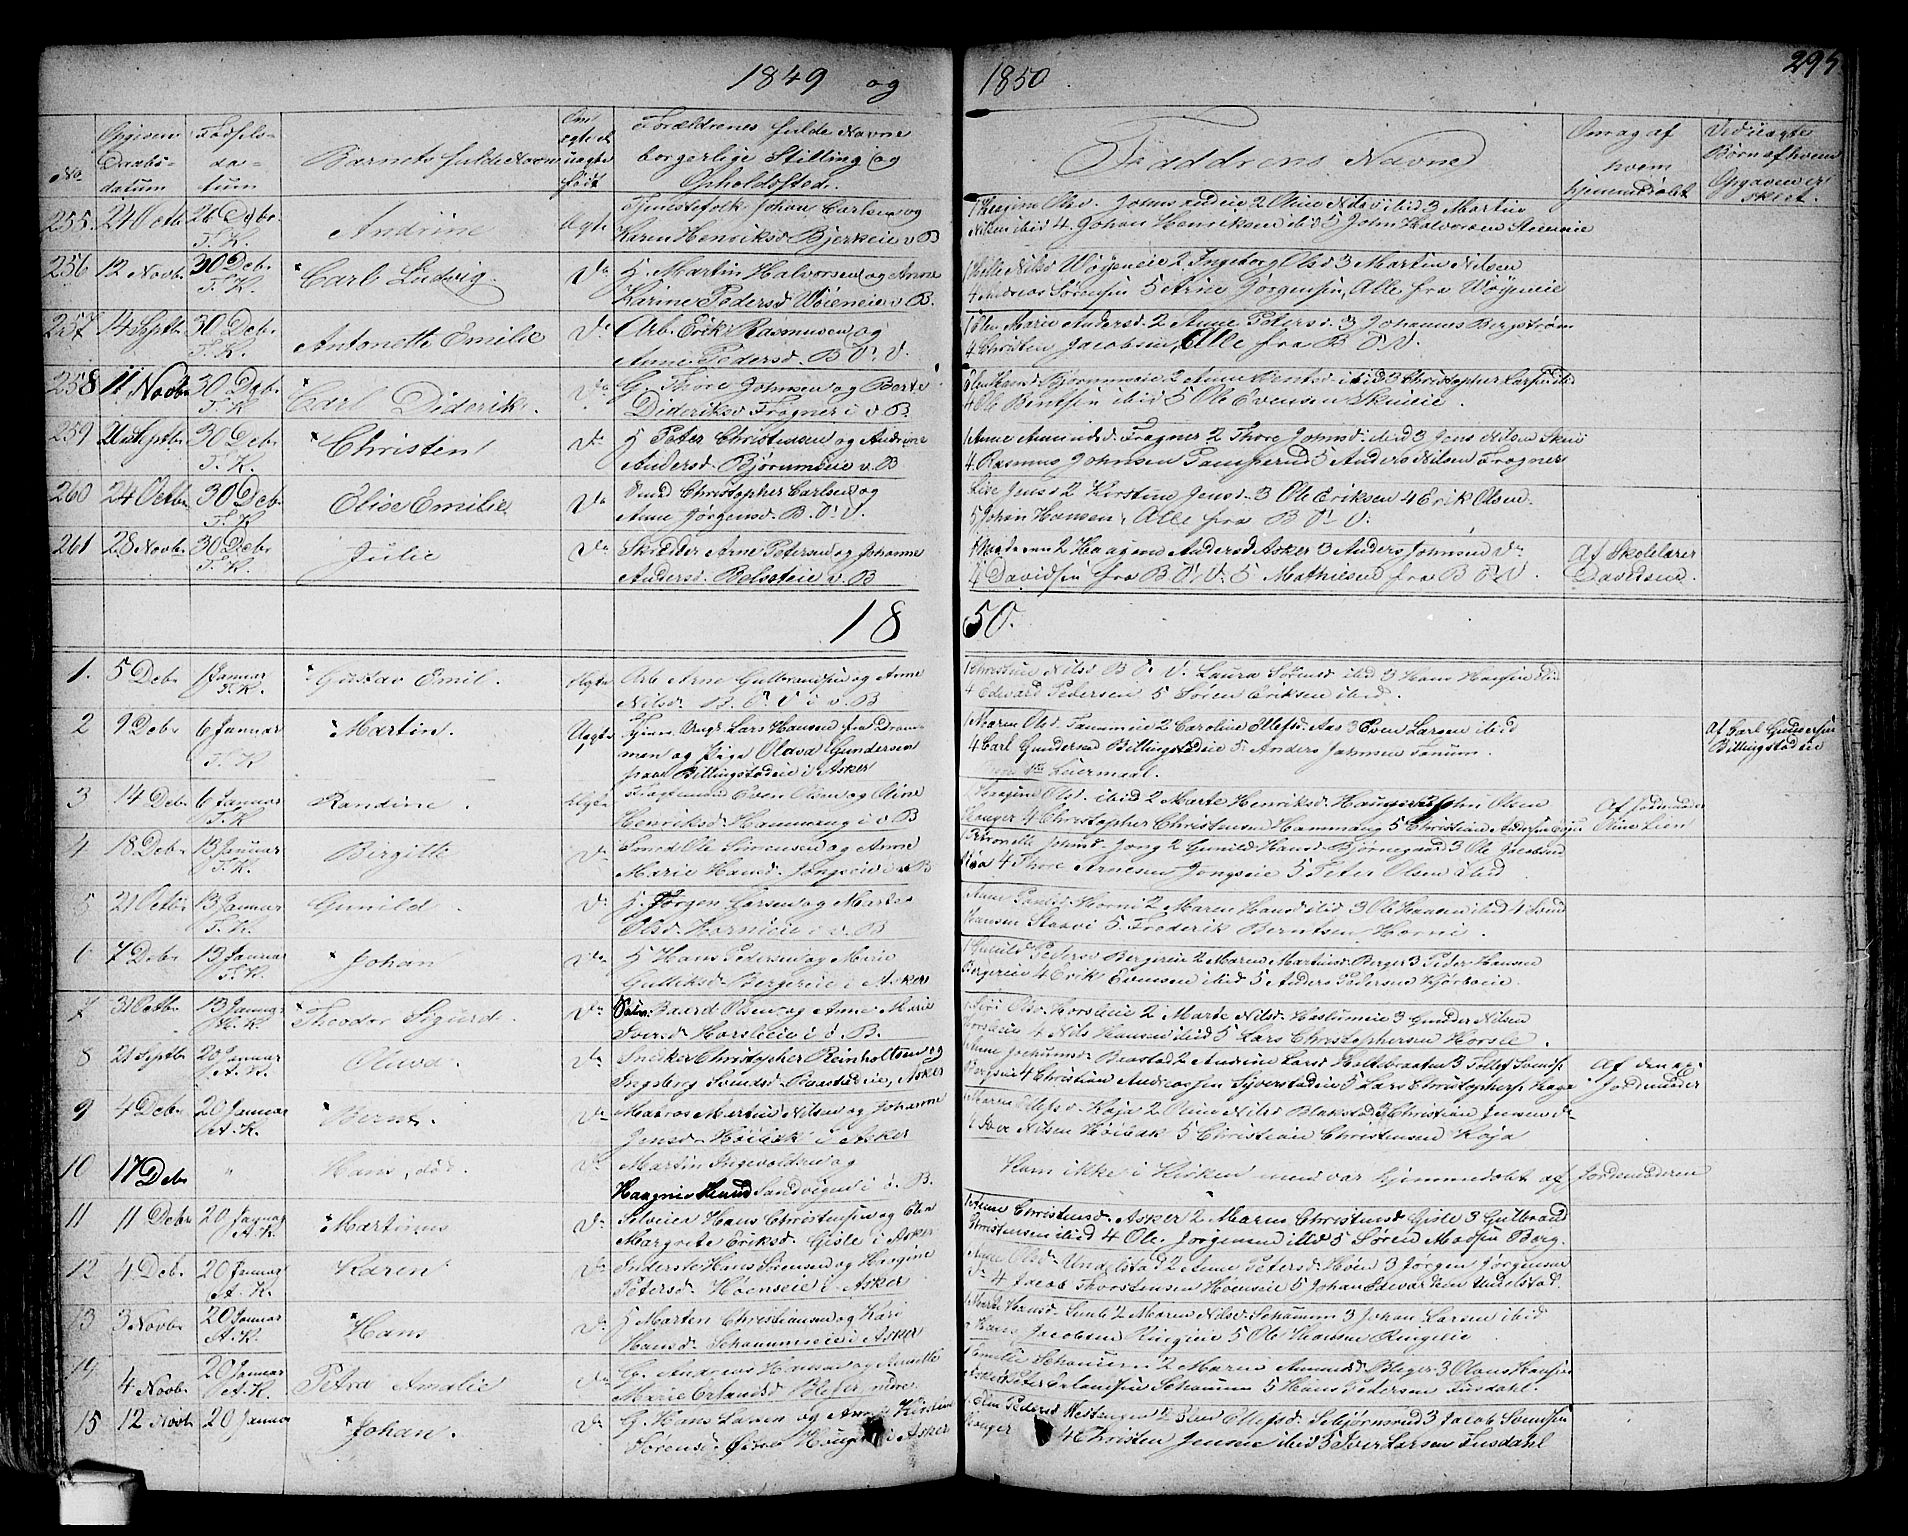 SAO, Asker prestekontor Kirkebøker, F/Fa/L0007: Parish register (official) no. I 7, 1825-1864, p. 295